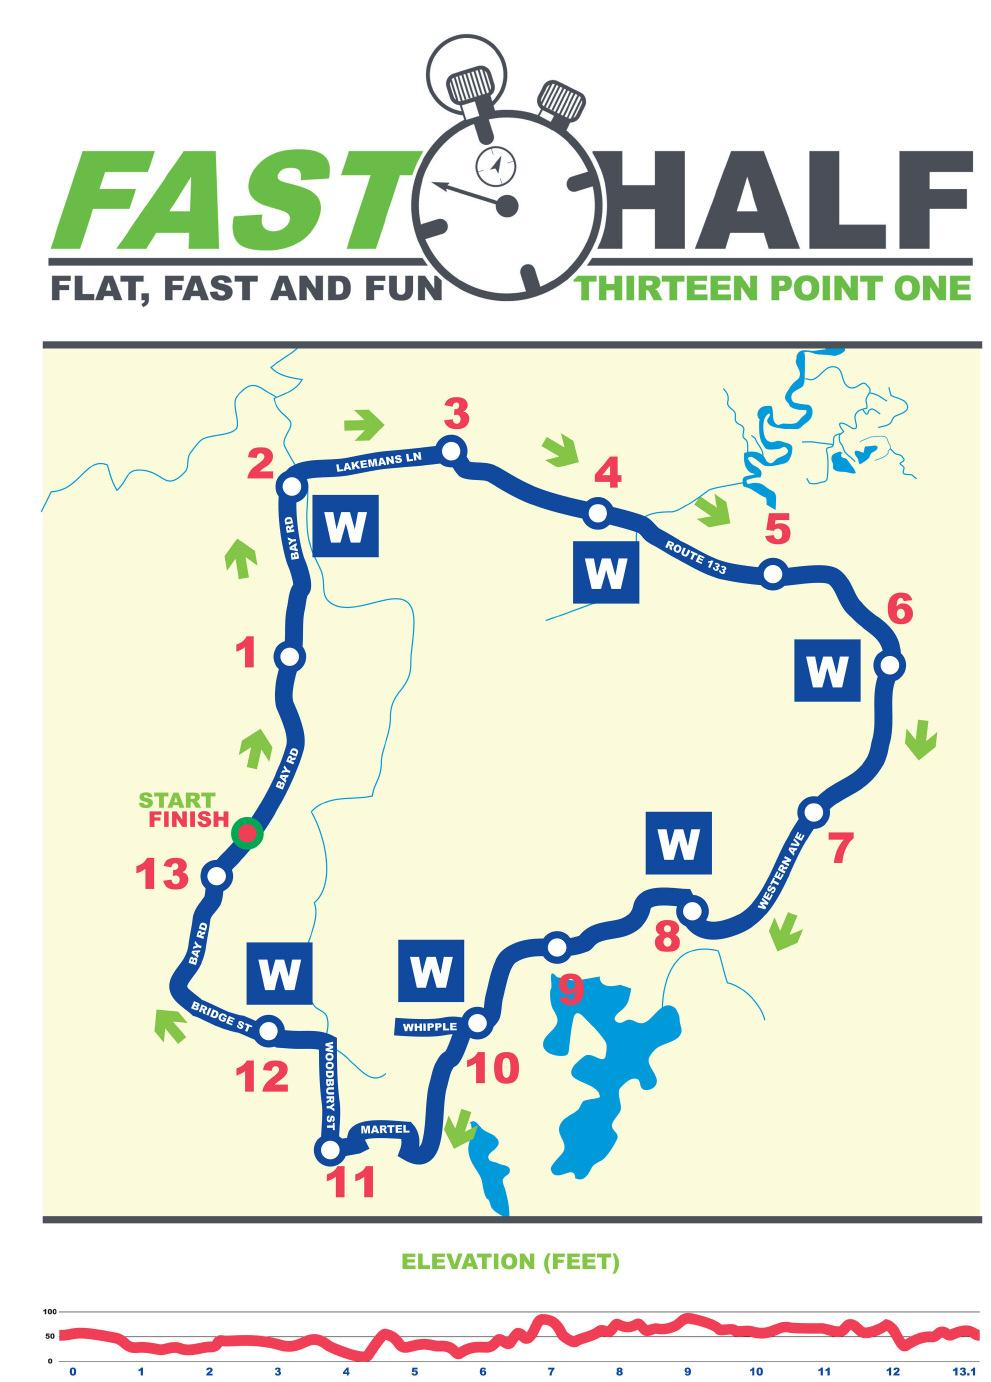 The Building Center Fast Half Courses will be clearly marked with arrow signs and mile markers RACE Local police will provide race support on the course.